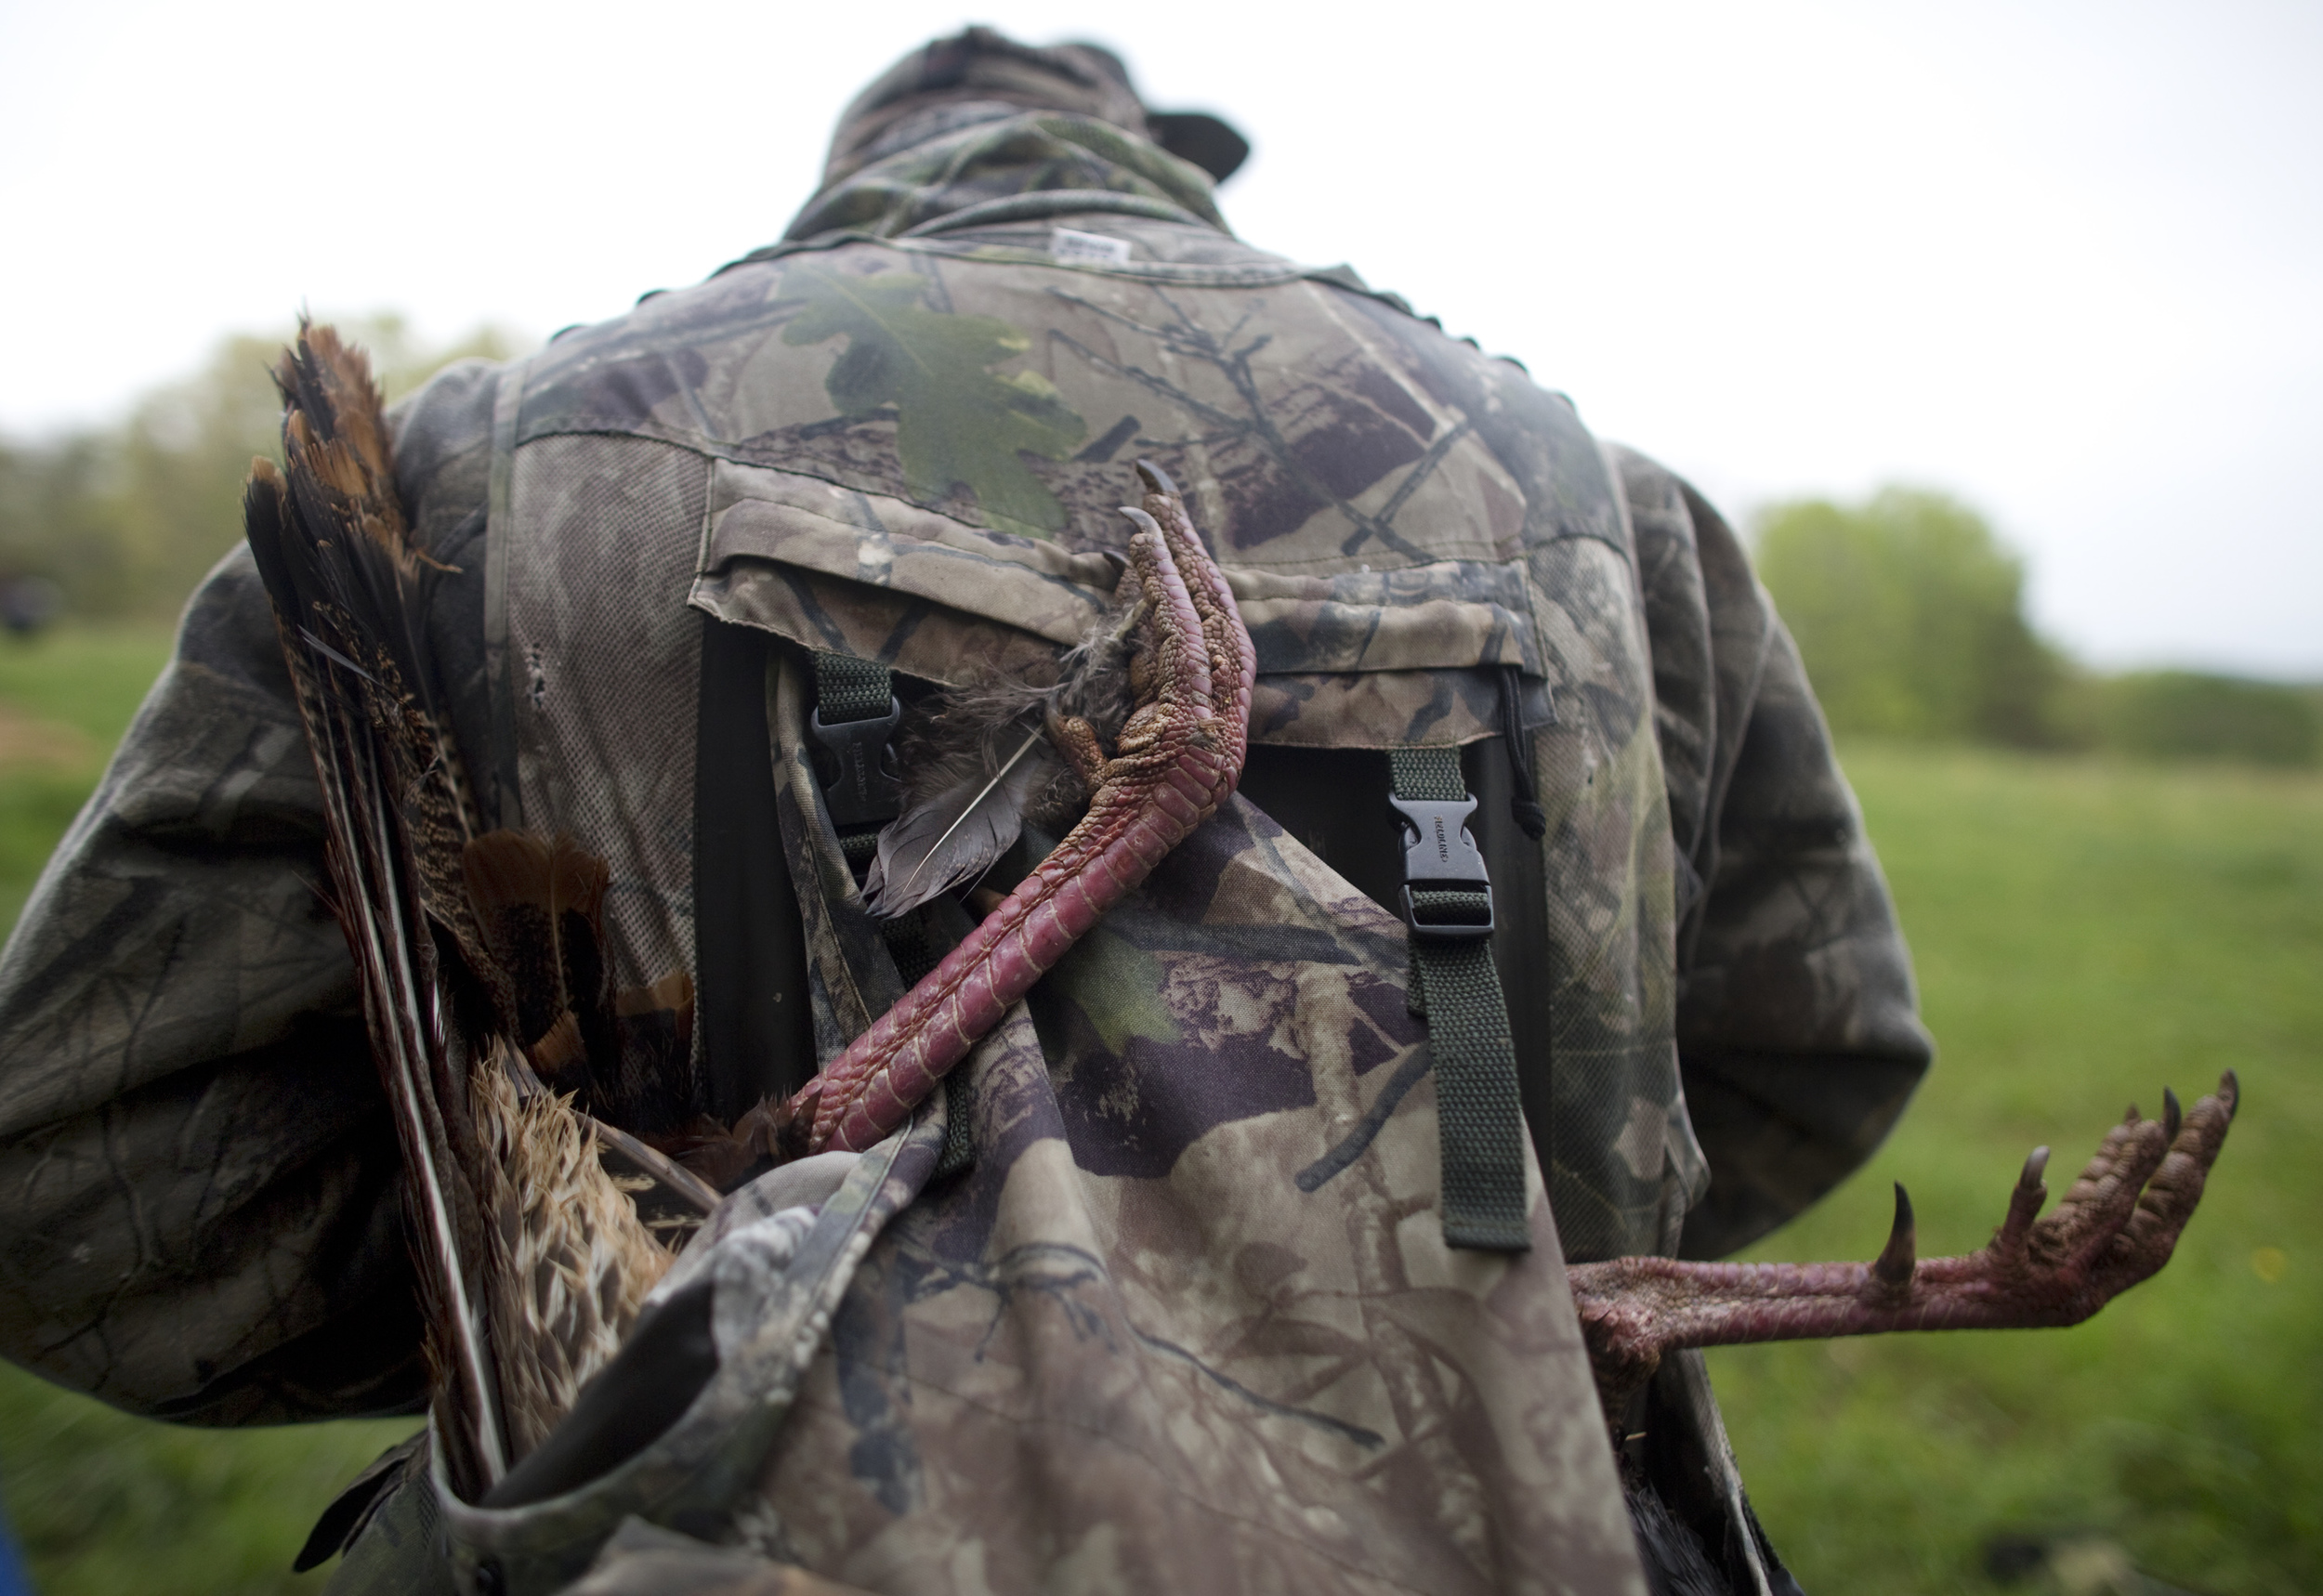 Steve Davenport packed up the gobbler into his sack to carry back to the Moose Lodge.